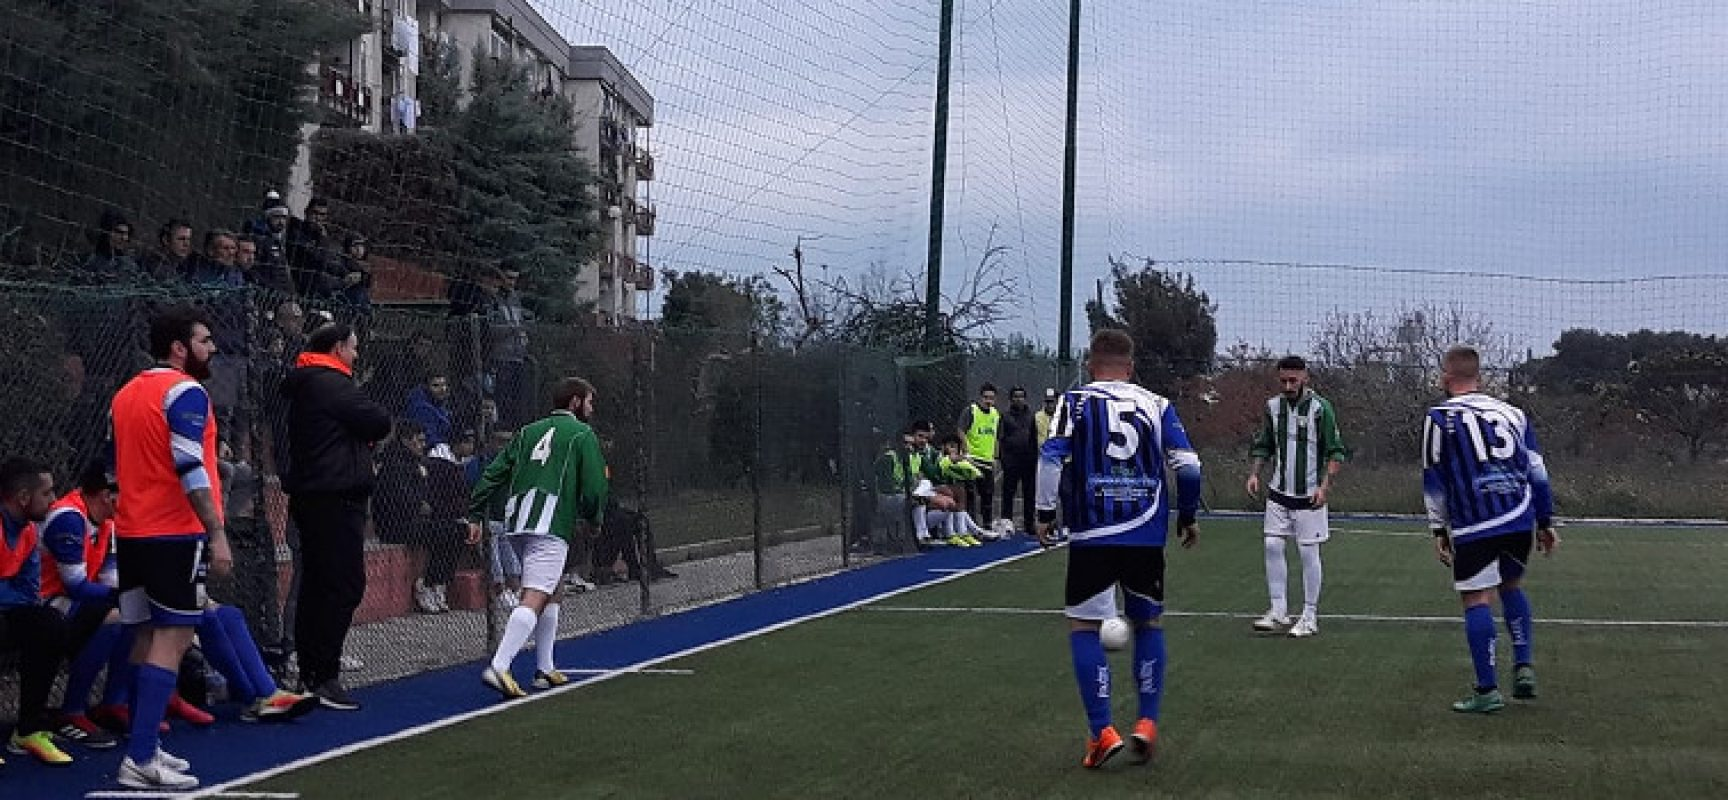 Futbol Cinco in scioltezza, Nettuno rifila il poker al Futsal Terlizzi \ CLASSIFICA